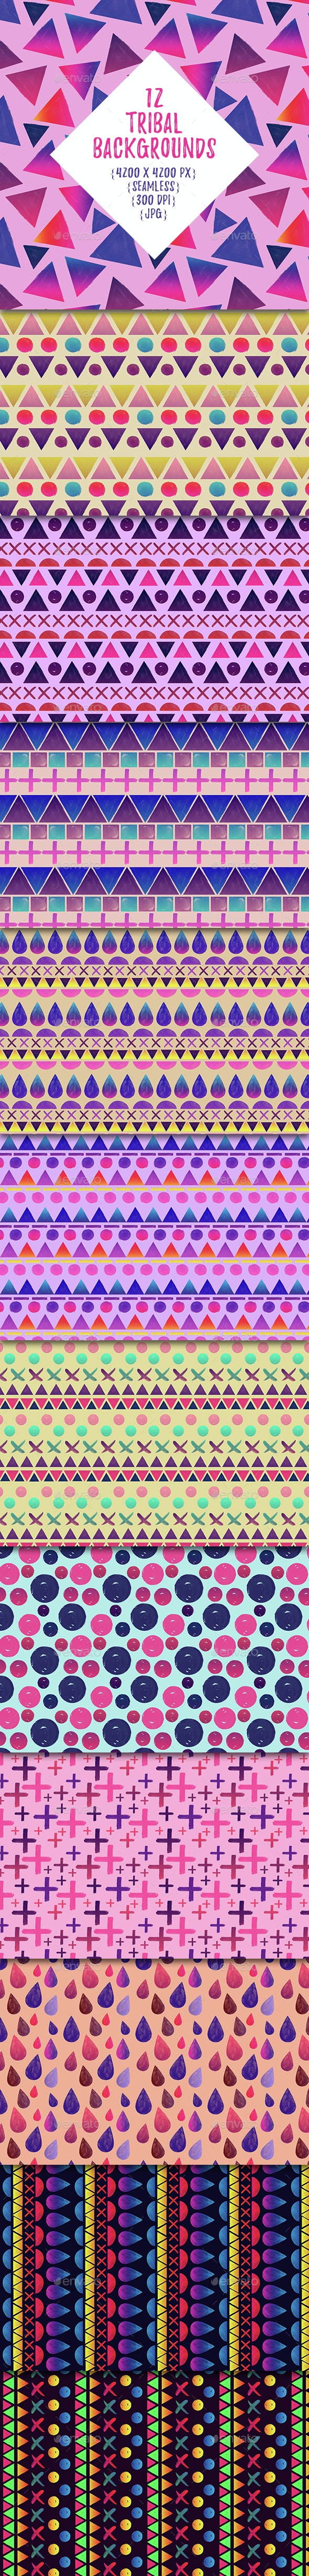 Colorful Tribal Backgrounds - Backgrounds Graphics